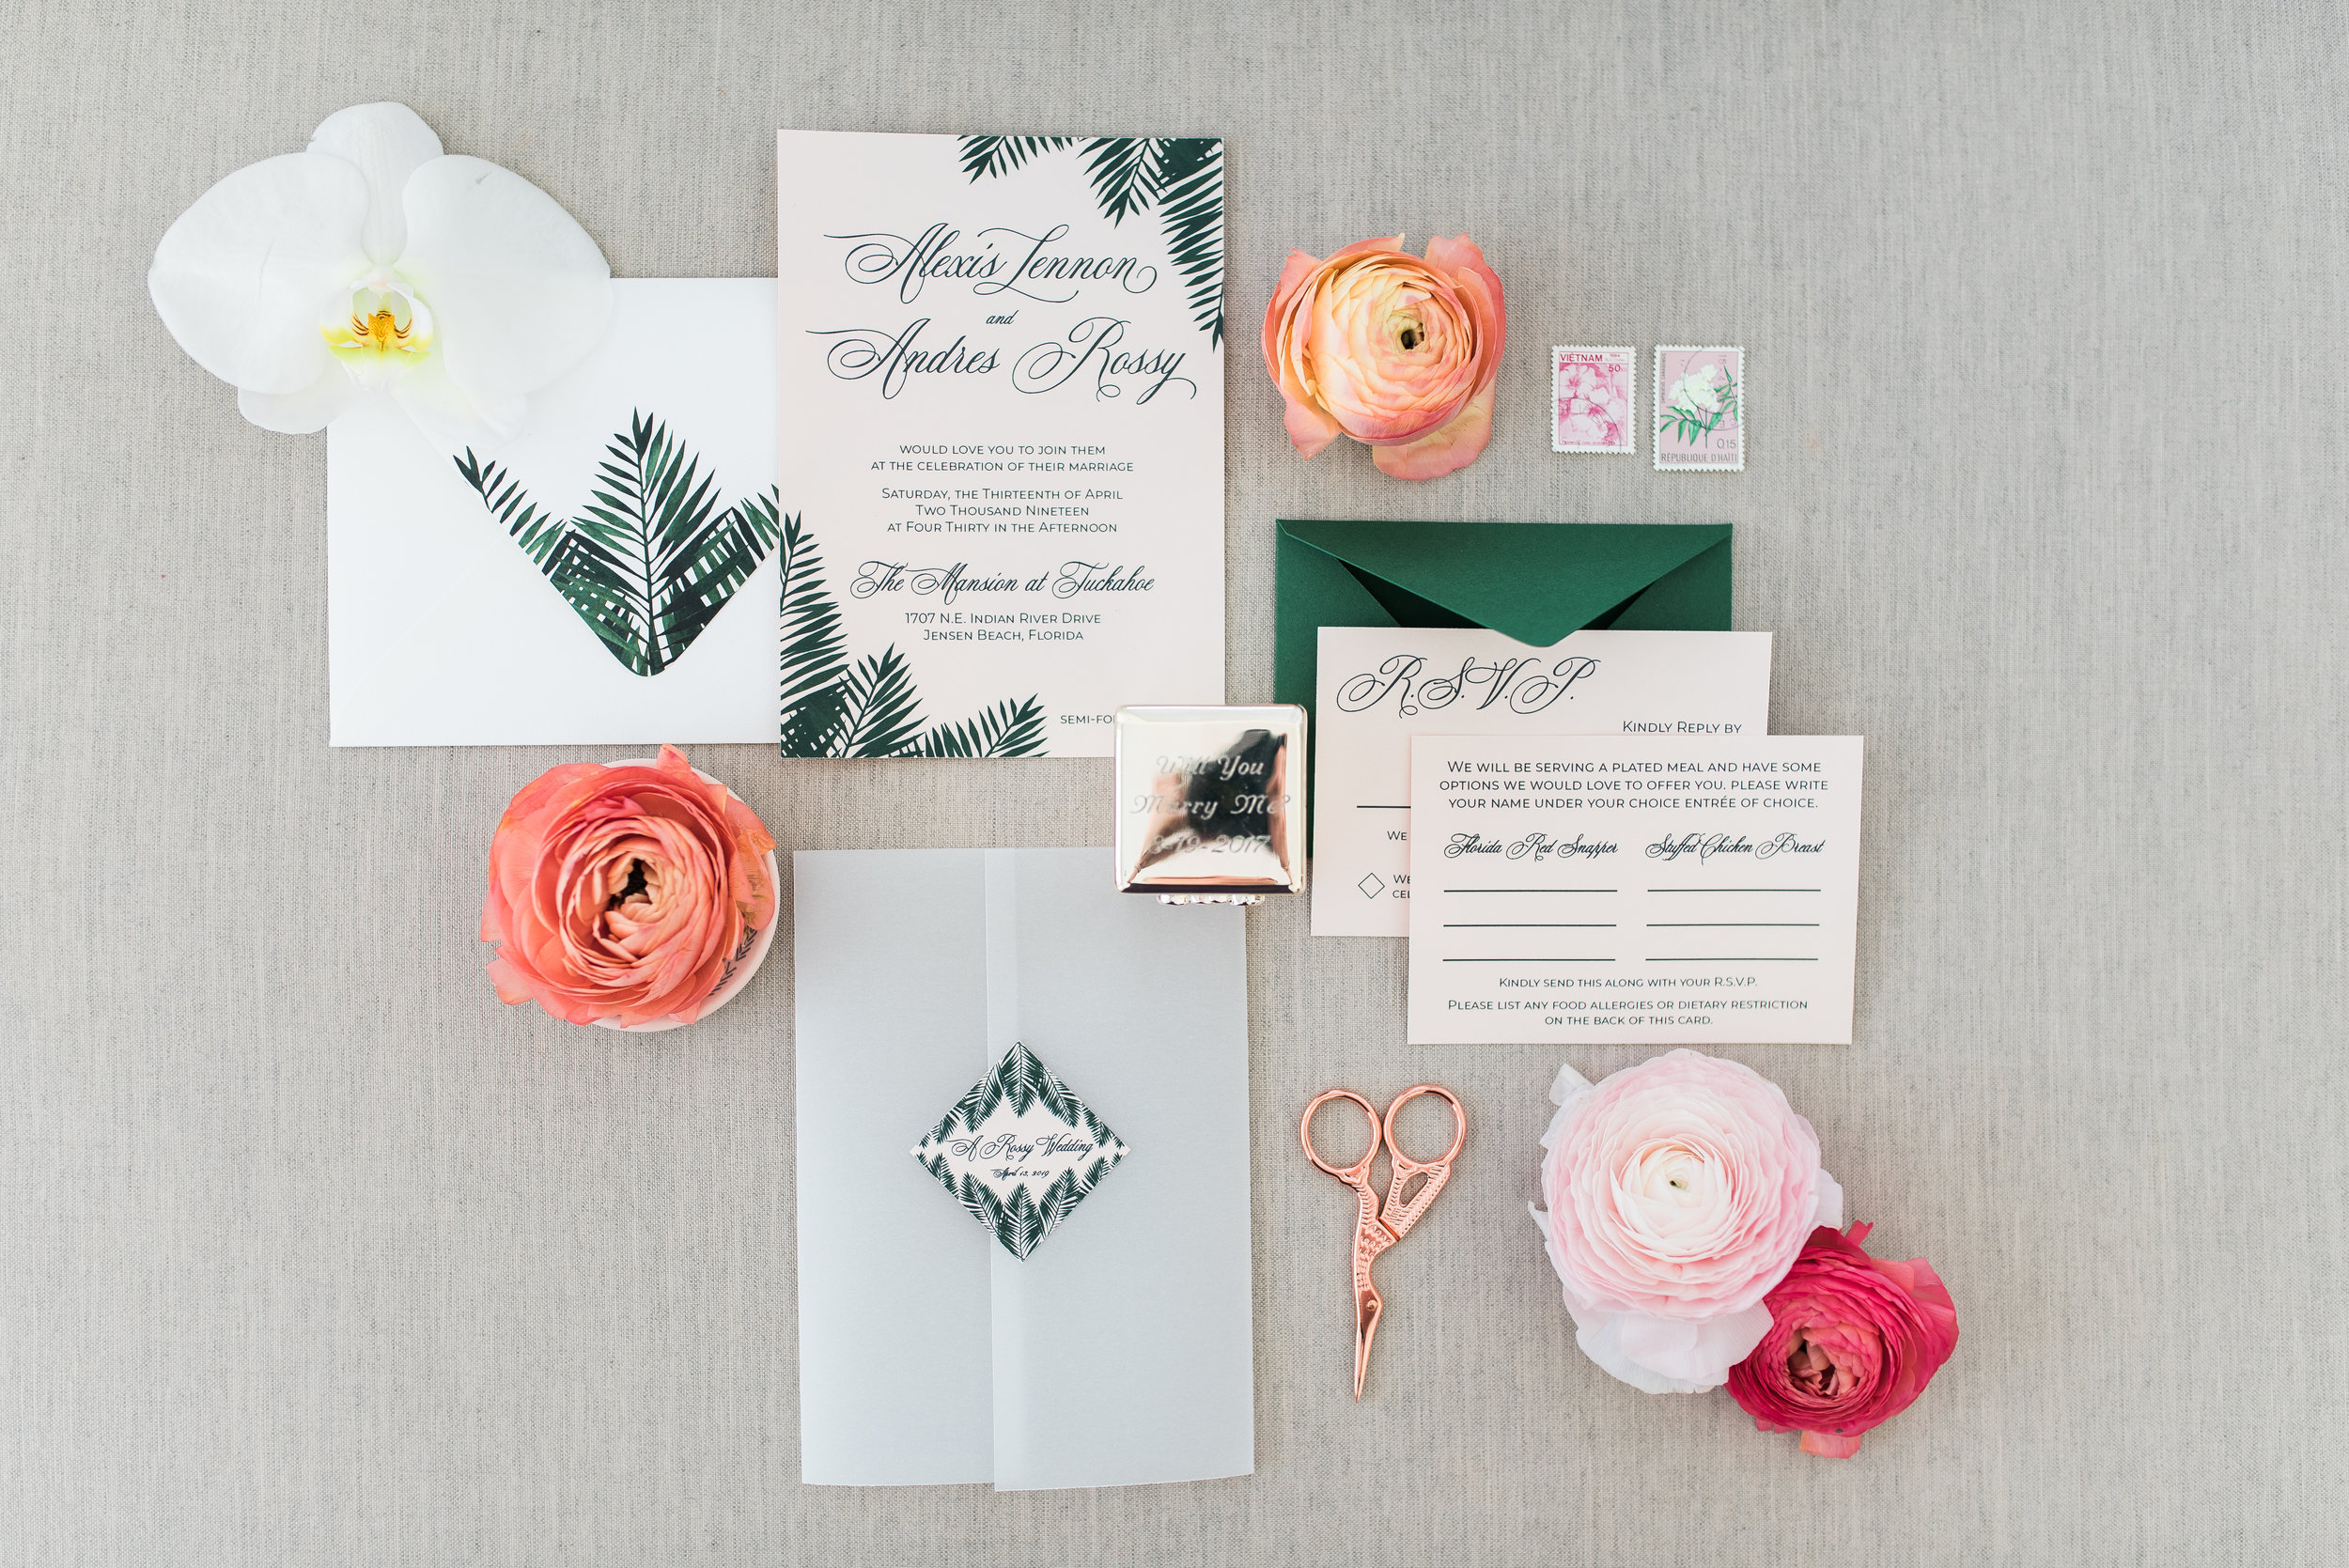 tropical Invitation Suite with palm tree leaf details printed on shimmer blush stock. vellum gatefold with wedding info icon on the front. Double RSVP with Forest Green envelope. Photo shot by  Aurora Photography